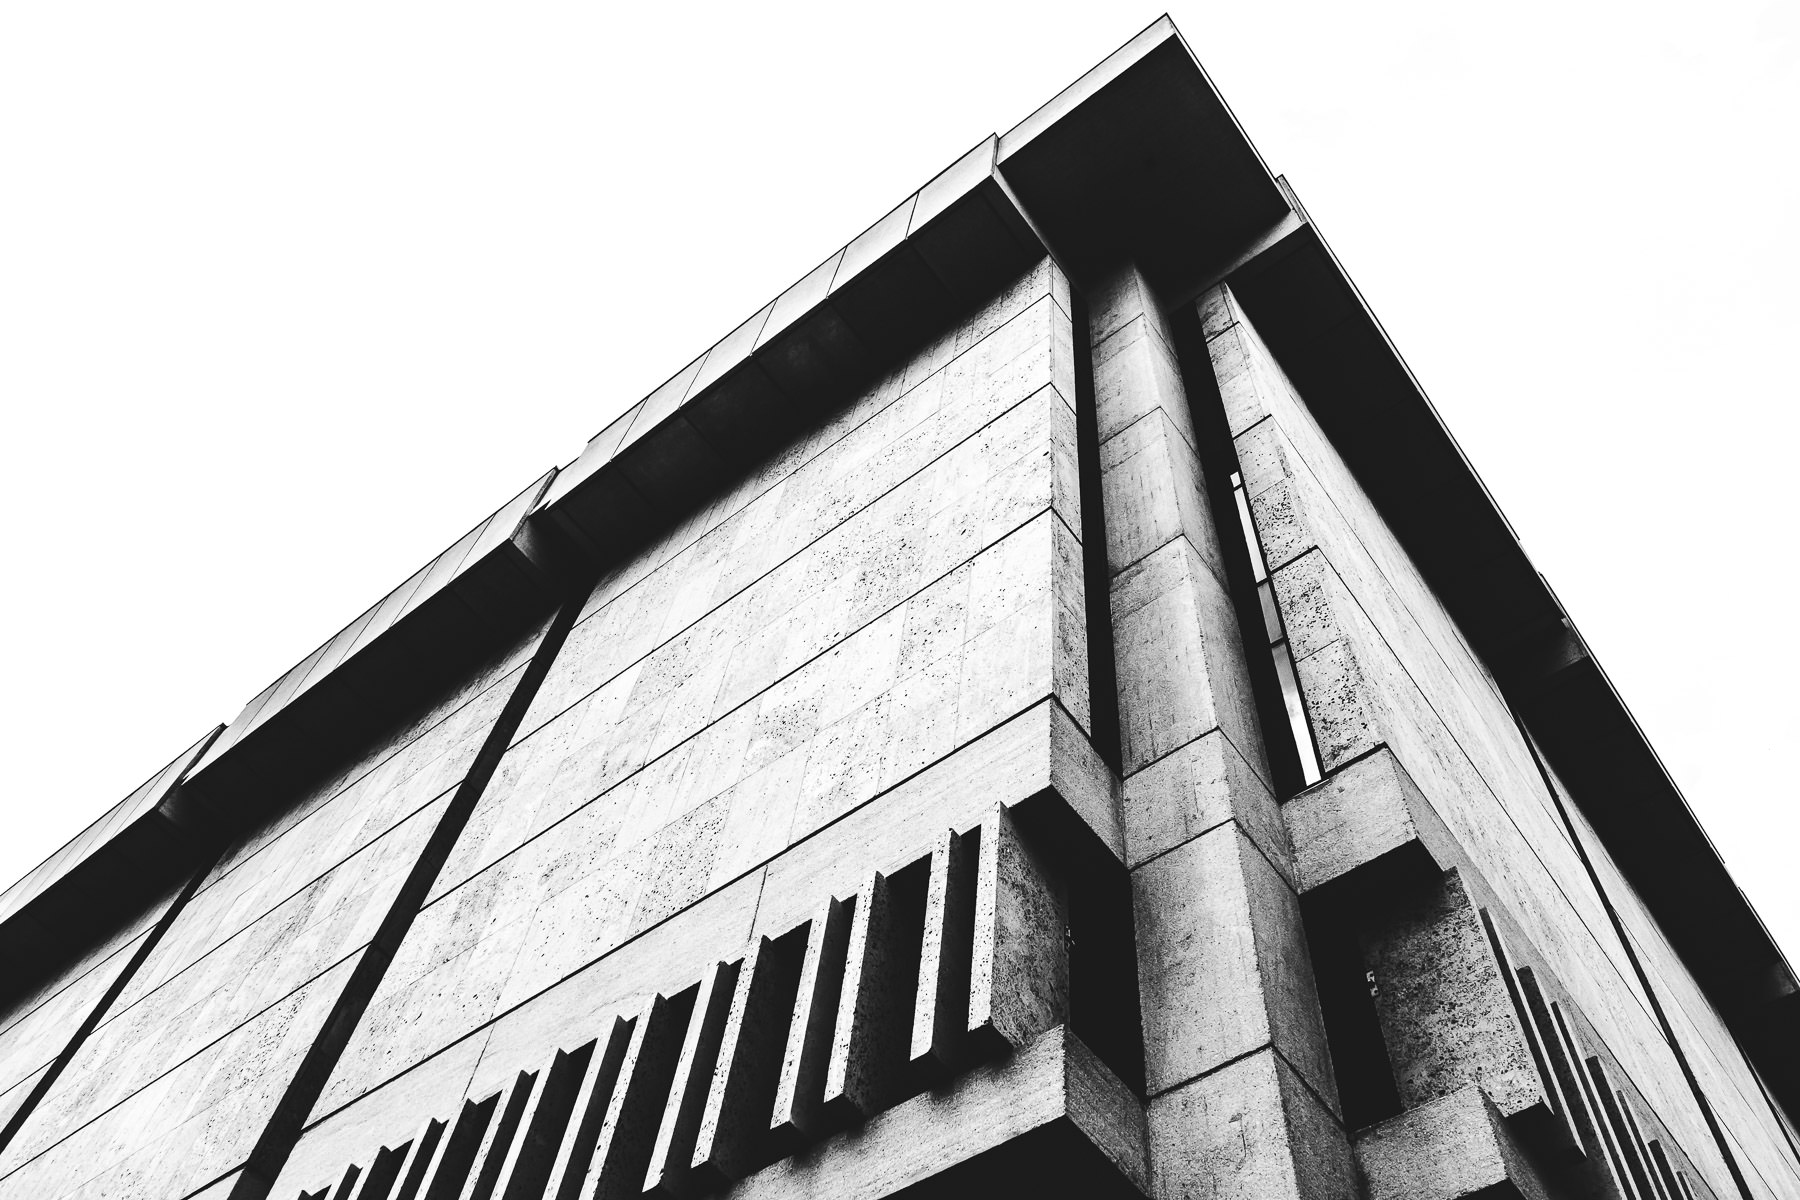 Architectural detail of the concrete exterior of the University of Texas' Harry Ransom Center, Austin, Texas.